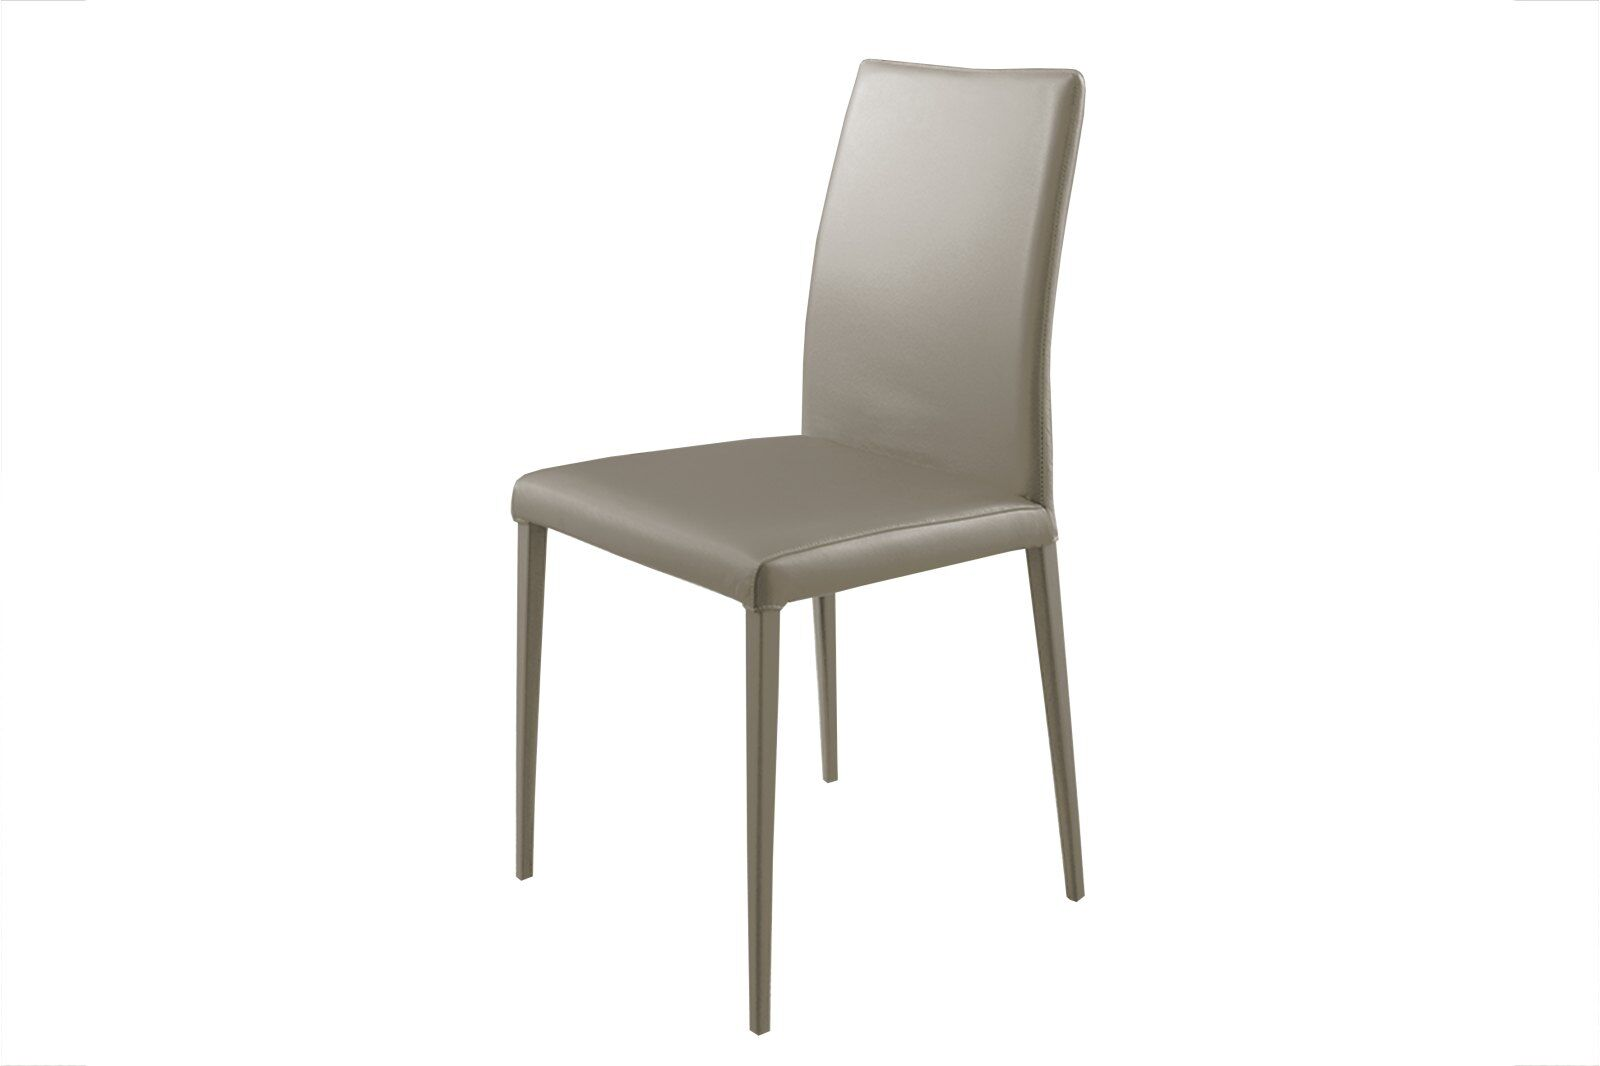 Dandy Leather Dining Chair / 1